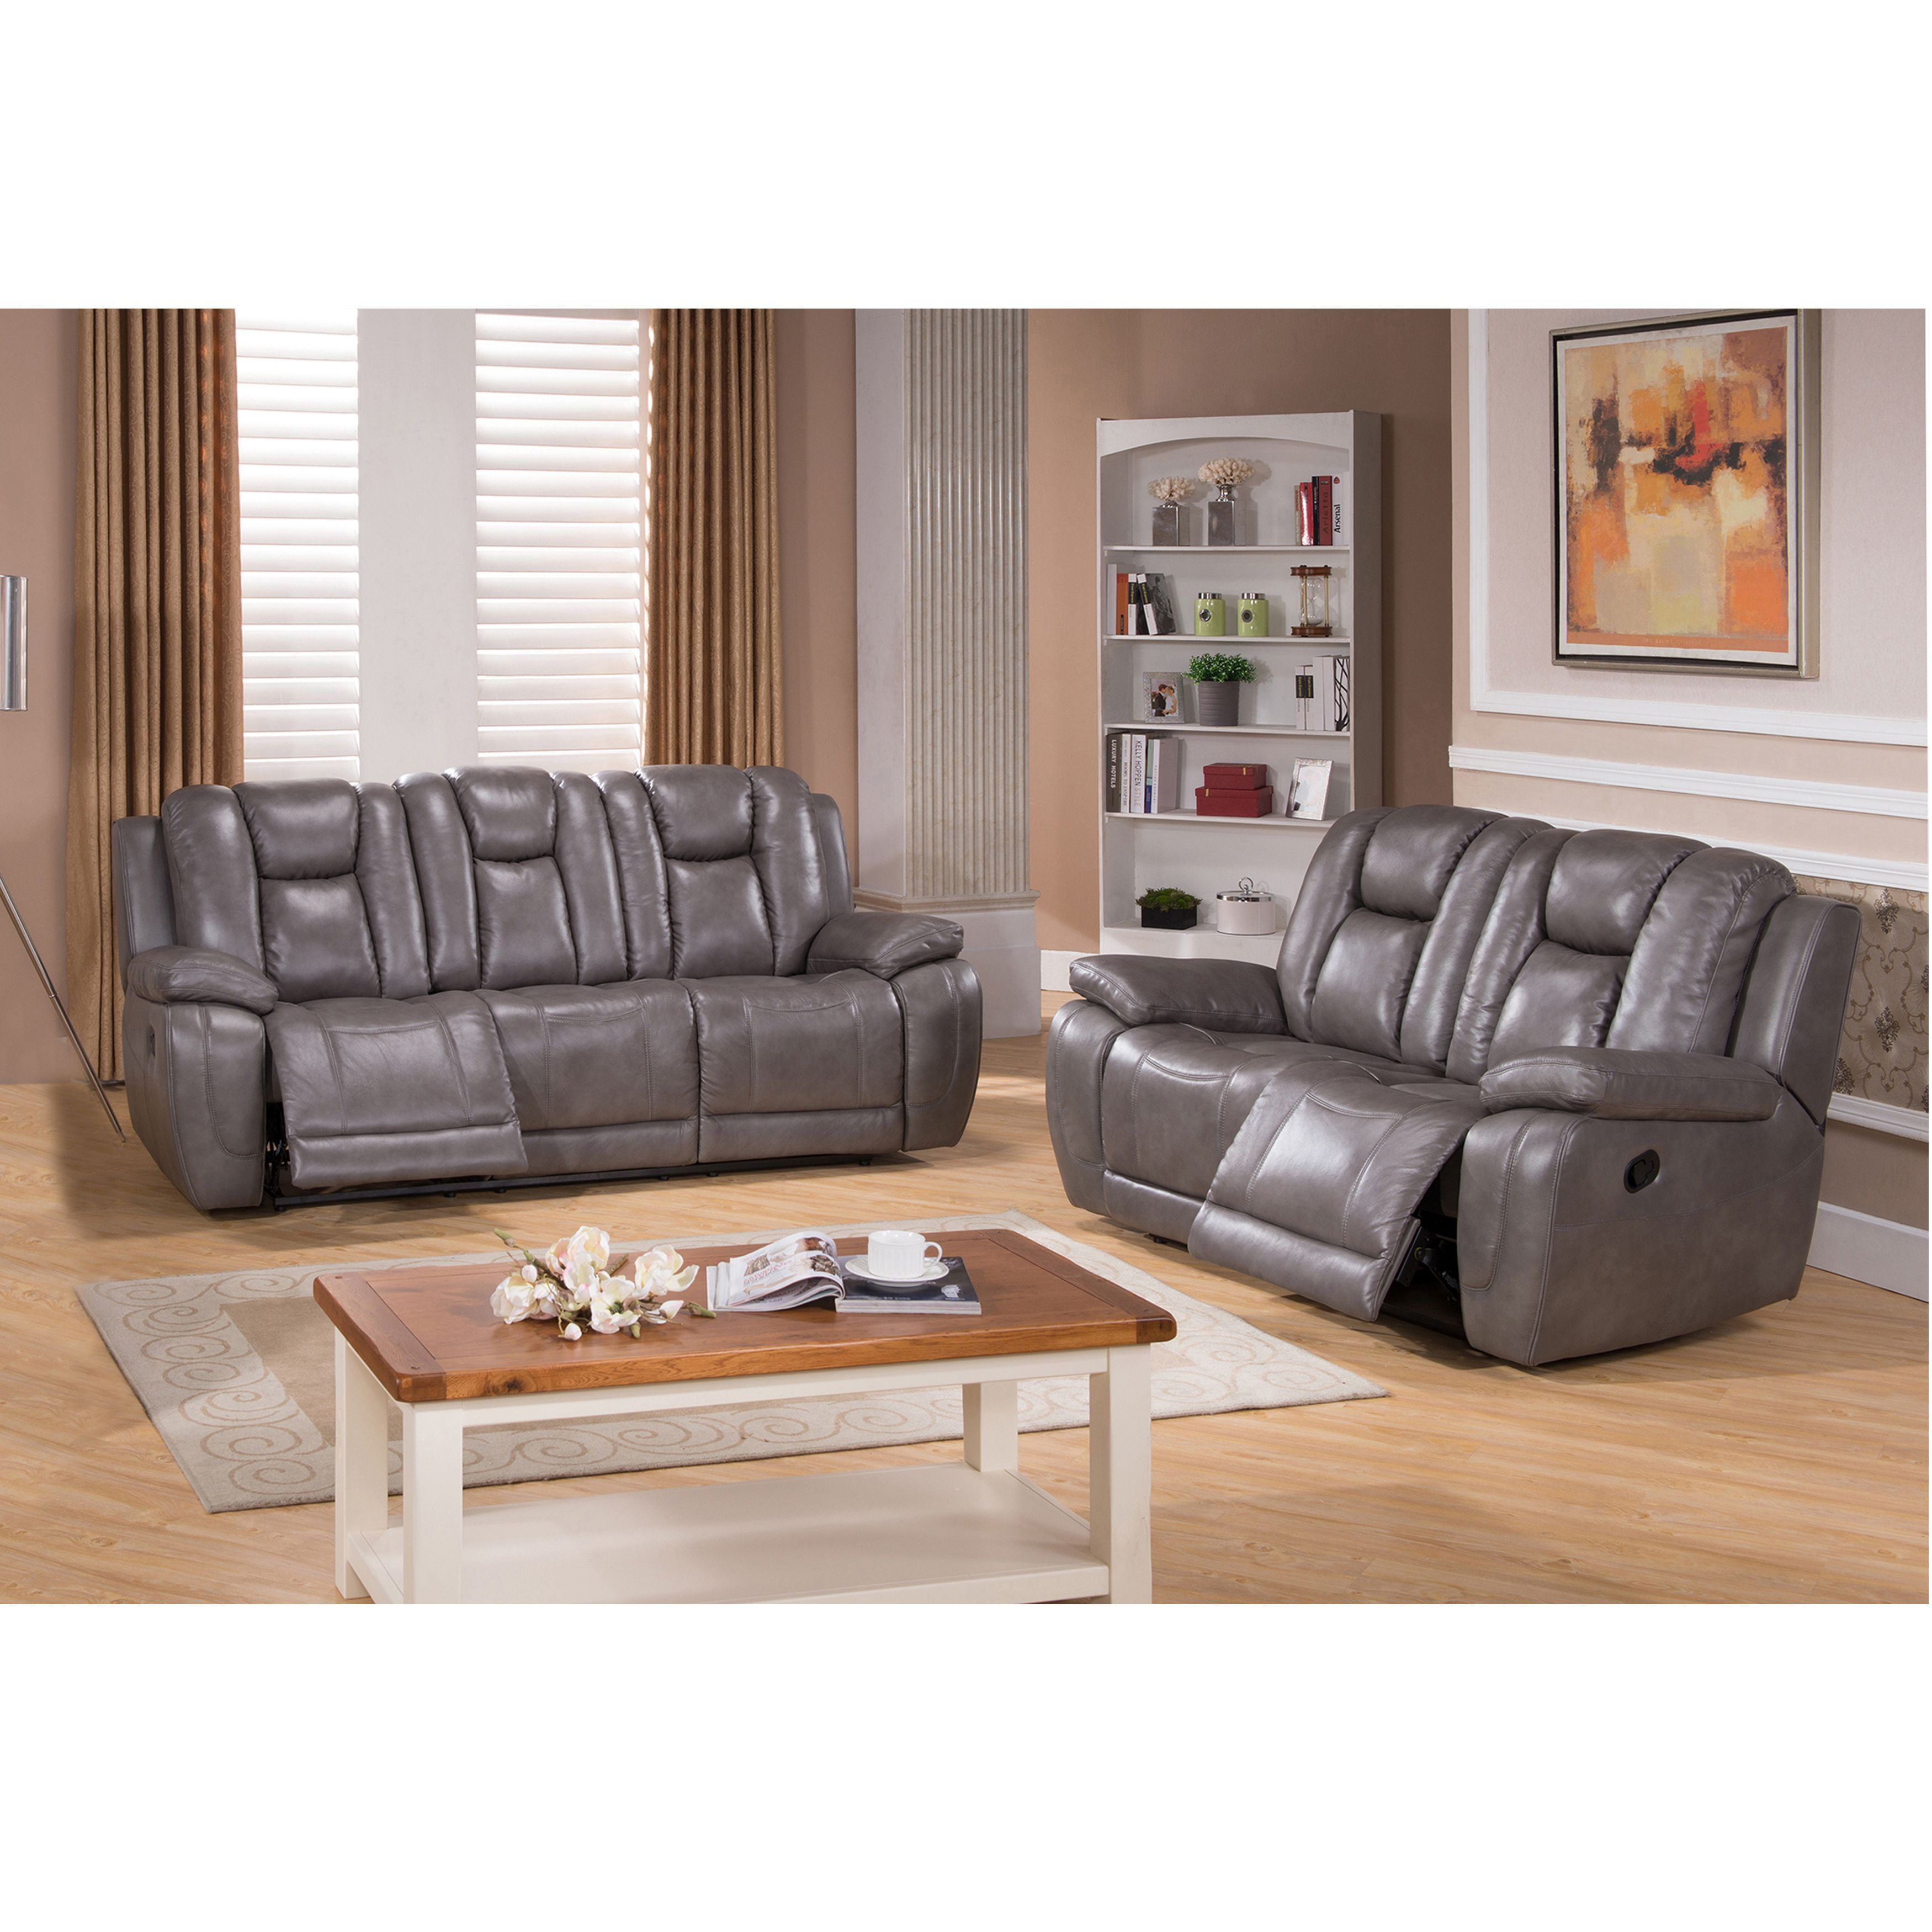 Galaxy Grey Top Grain Leather Lay Flat Reclining Sofa And